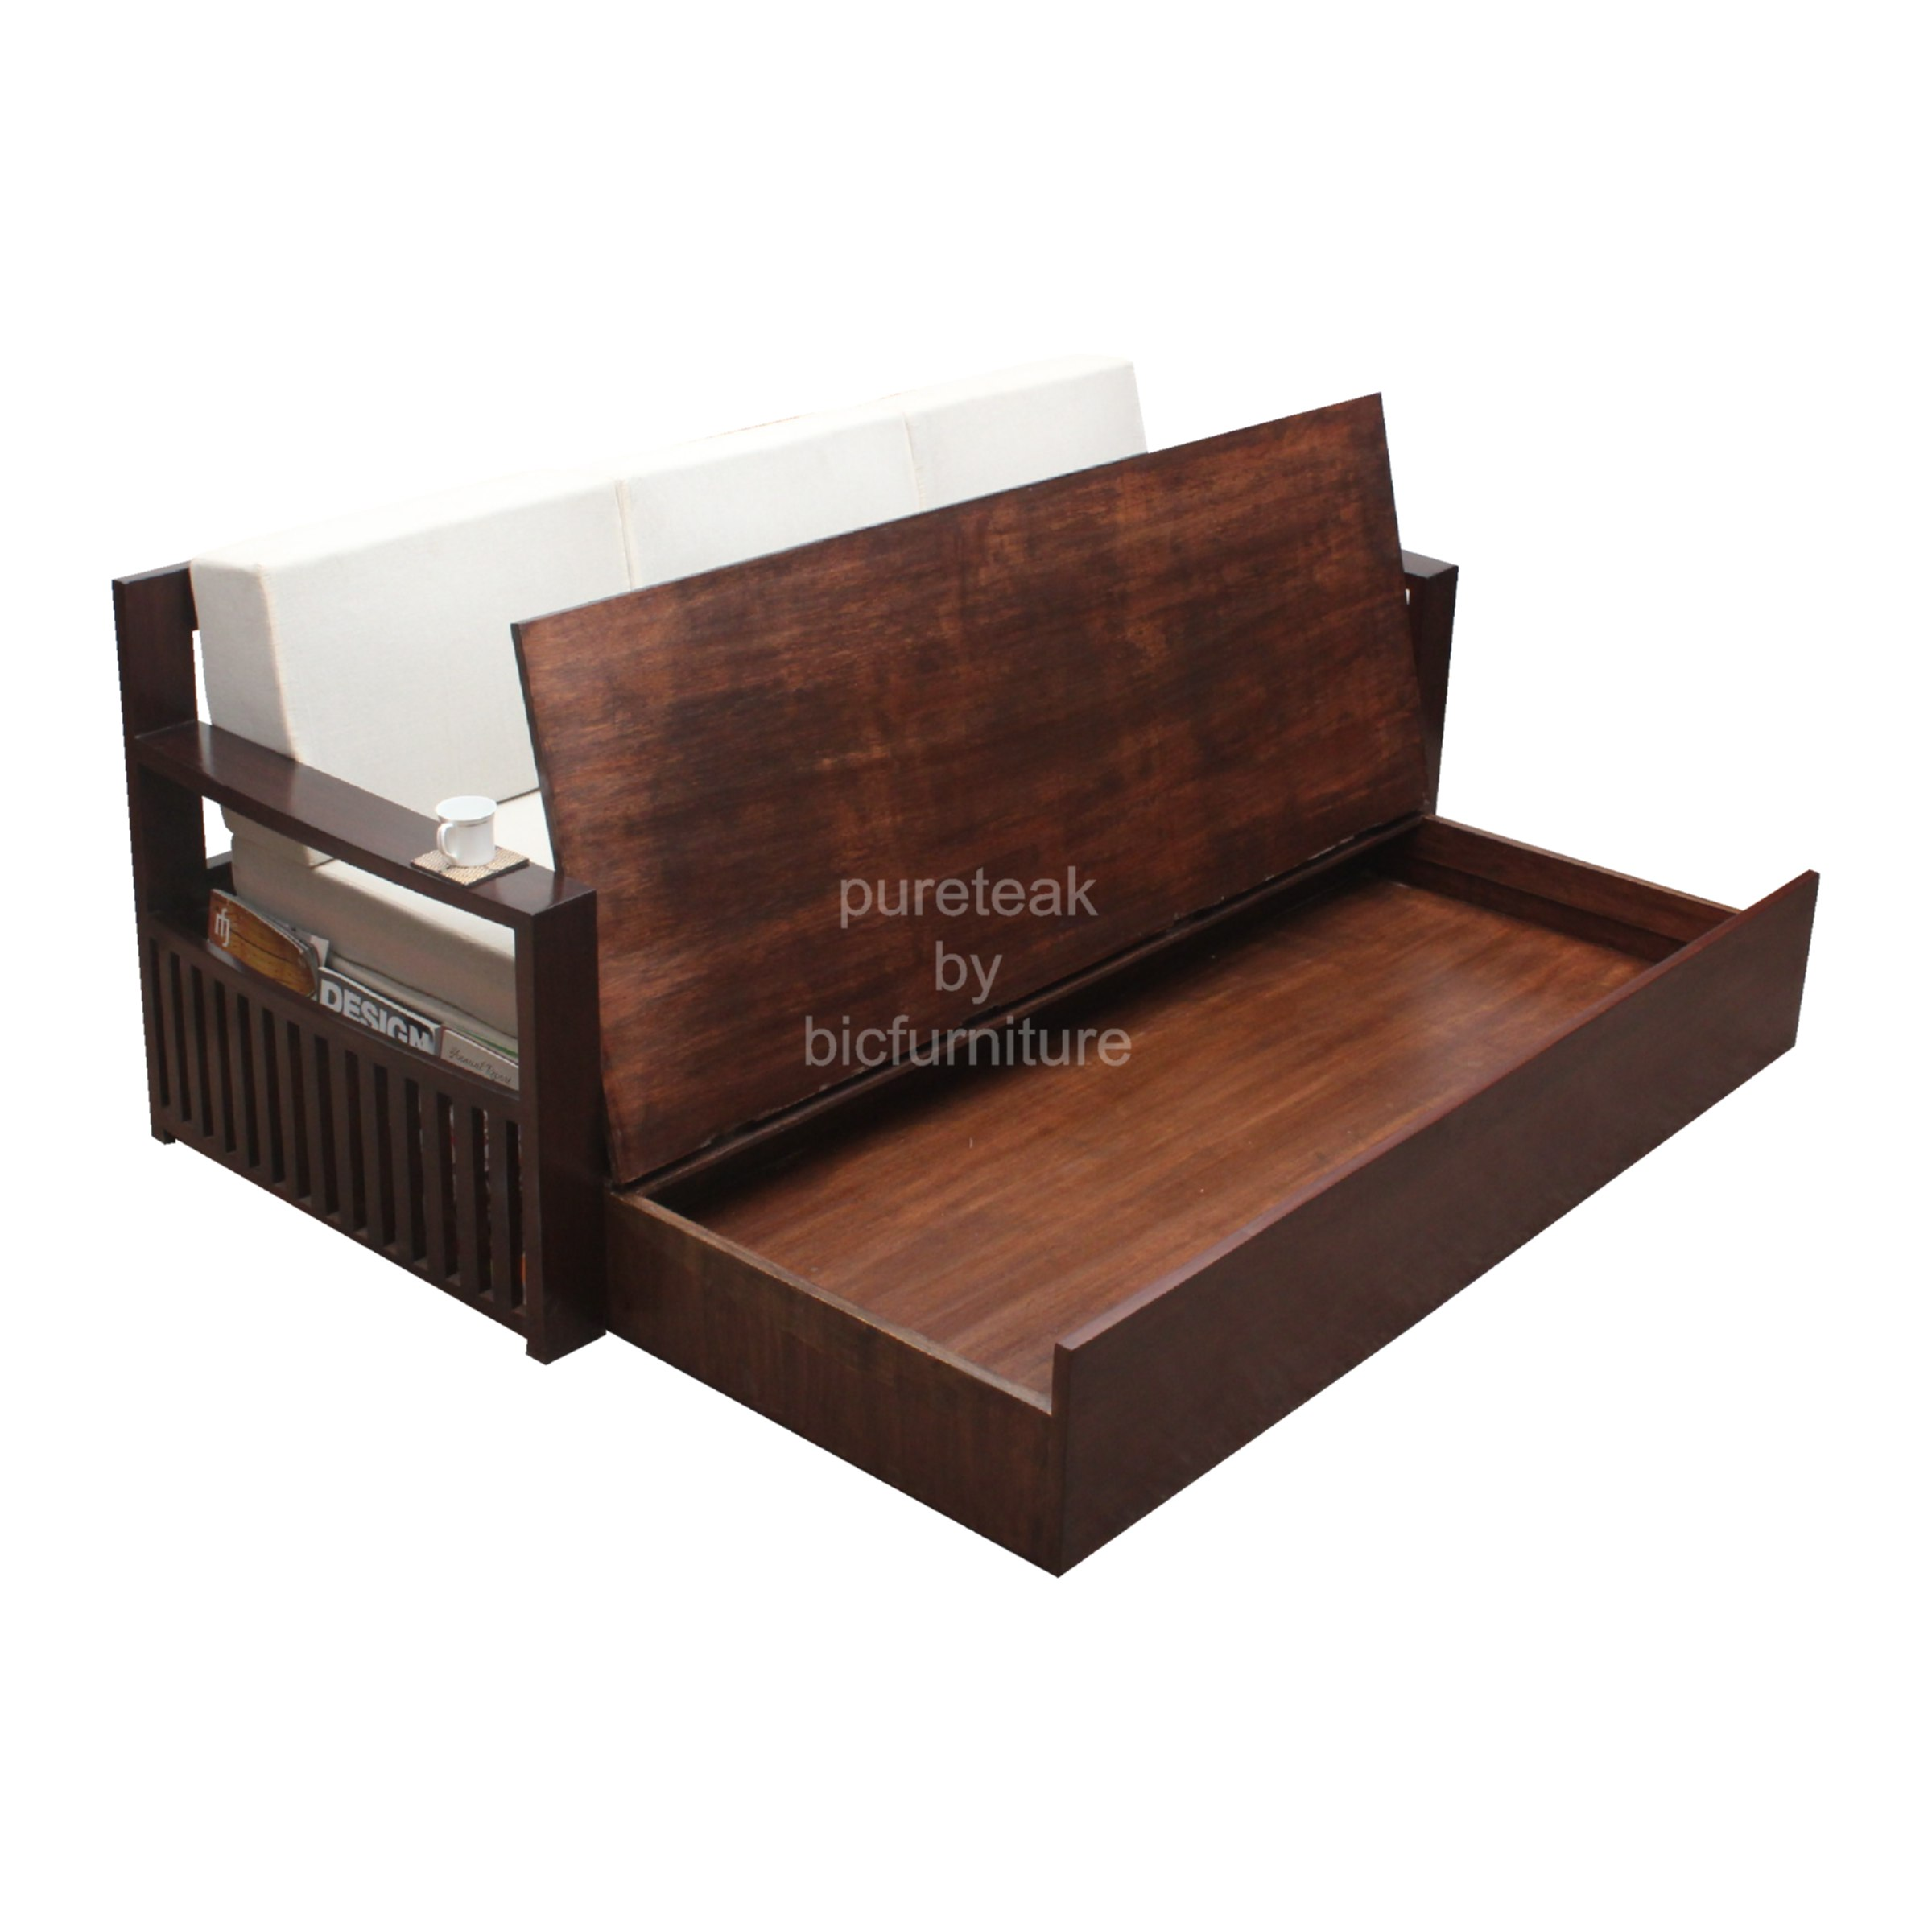 pics photos wooden bed sheesham wood bed mango wood bed rosewood bed